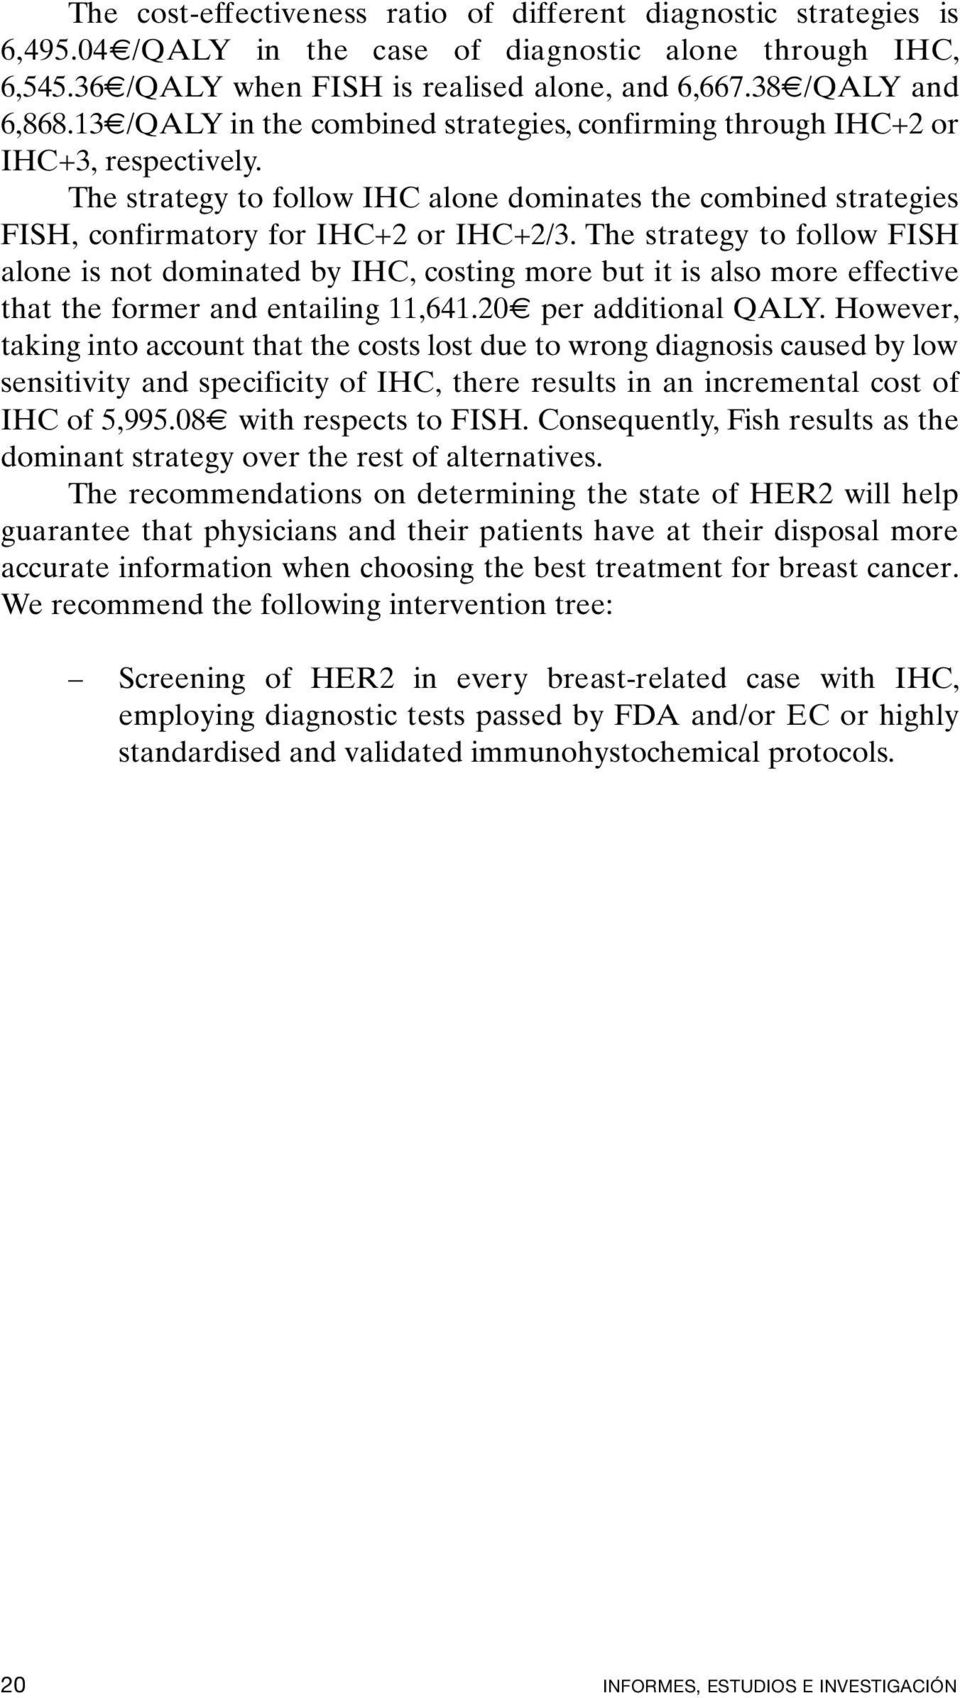 The strategy to follow IHC alone dominates the combined strategies FISH, confirmatory for IHC+2 or IHC+2/3.